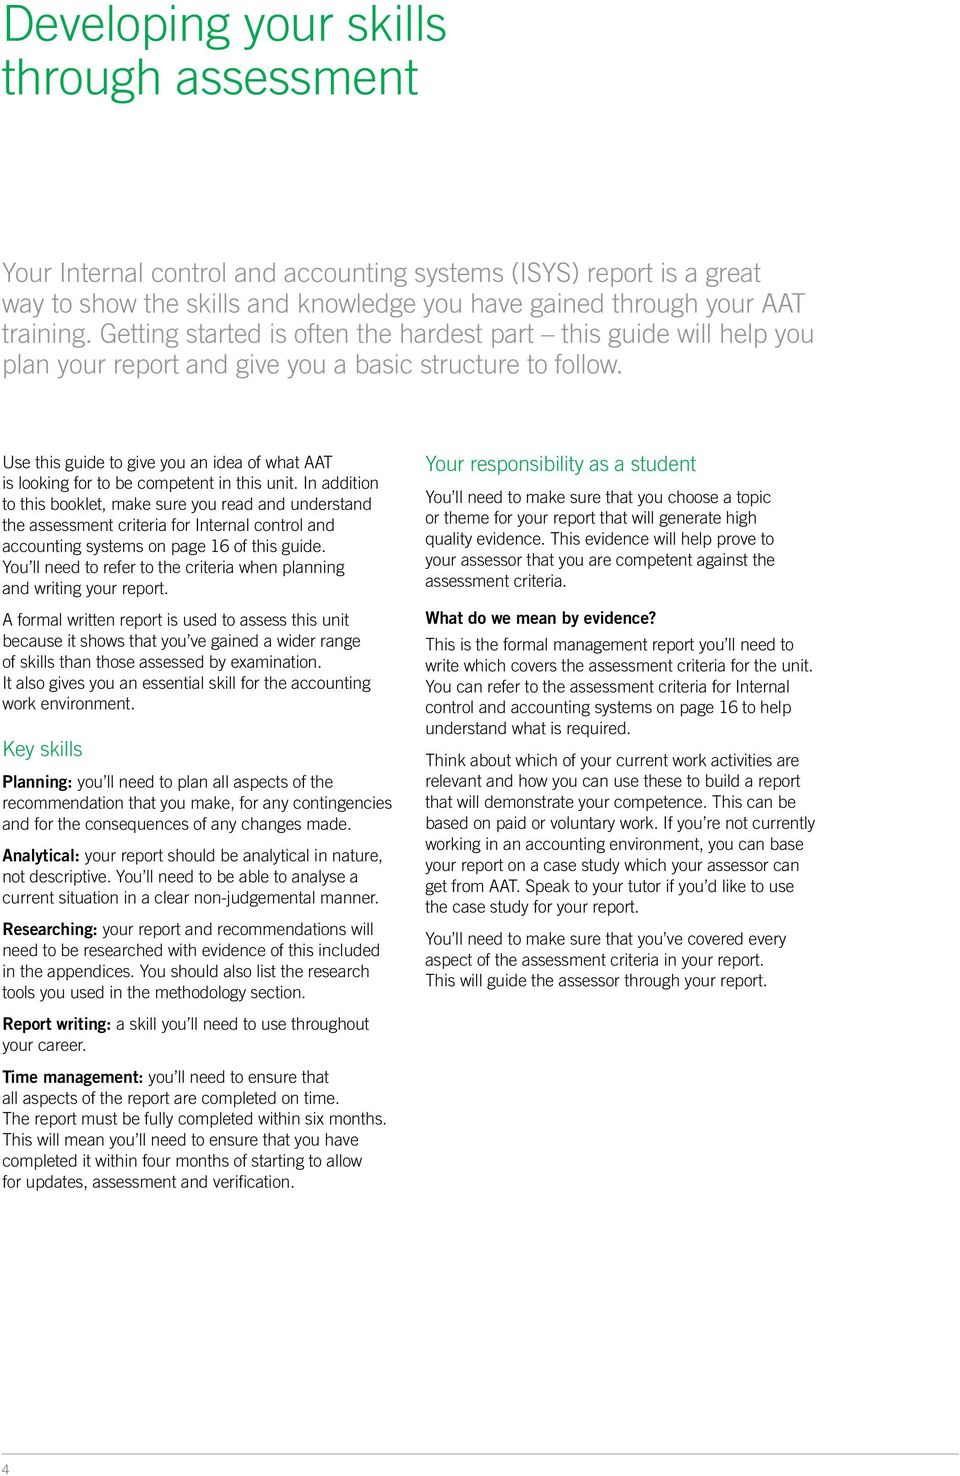 Use this guide to give you an idea of what AAT is looking for to be competent in this unit.